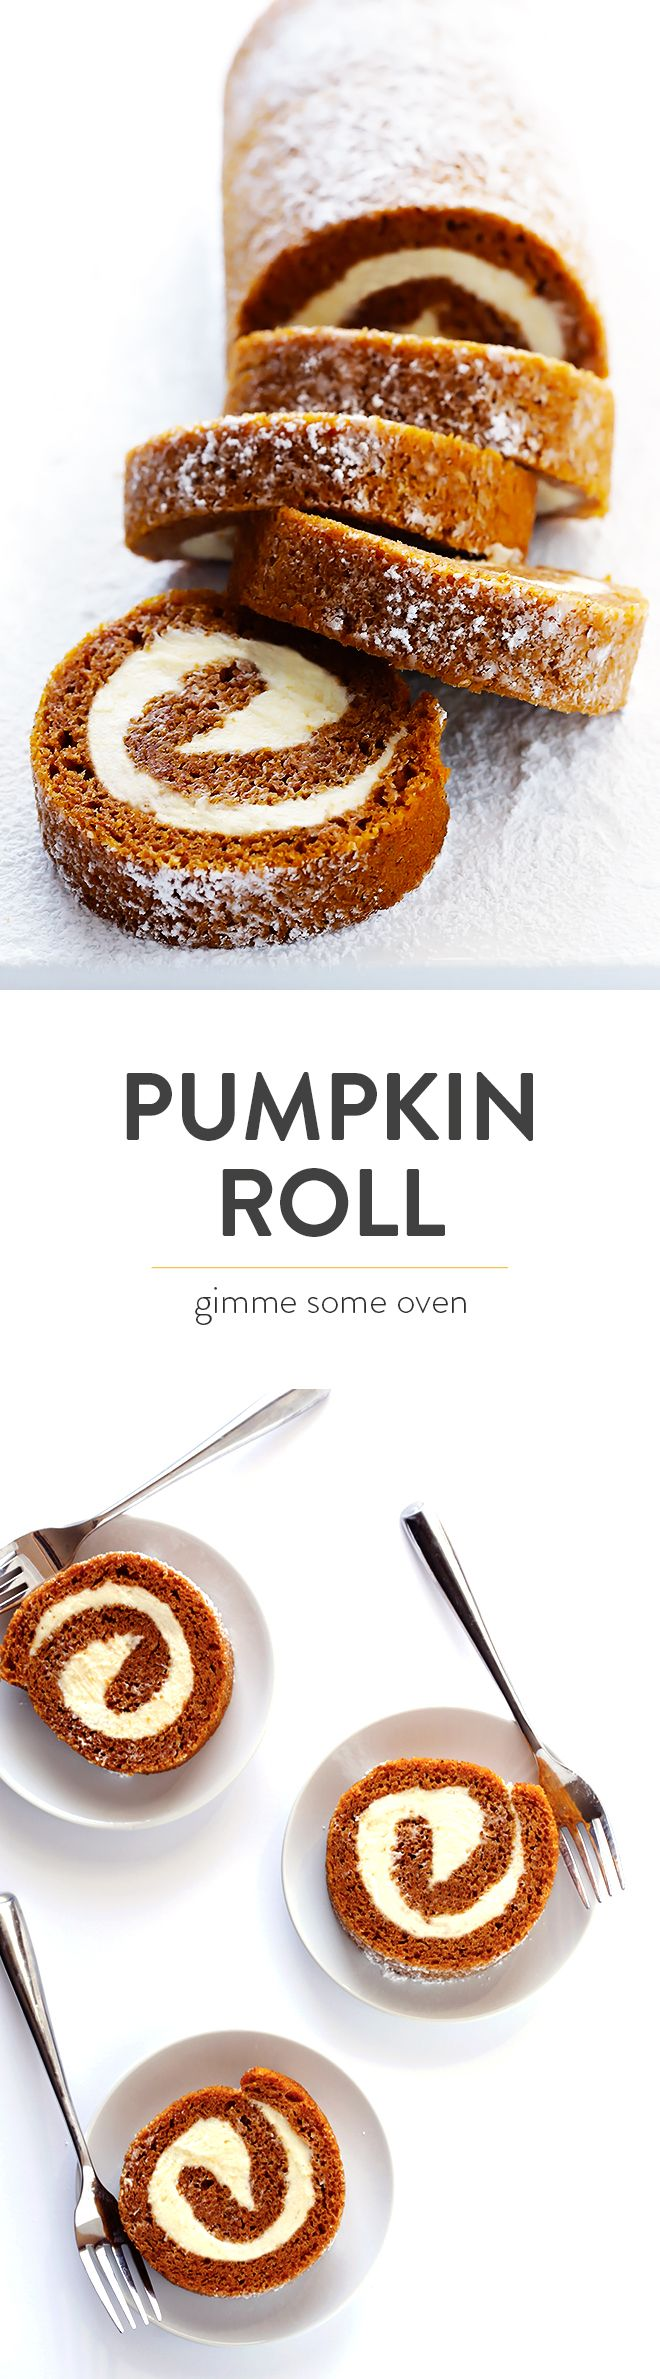 Learn how to make a classic pumpkin roll with this easy recipe and step-by-step tutorial (including a video!).  It's surprisingly